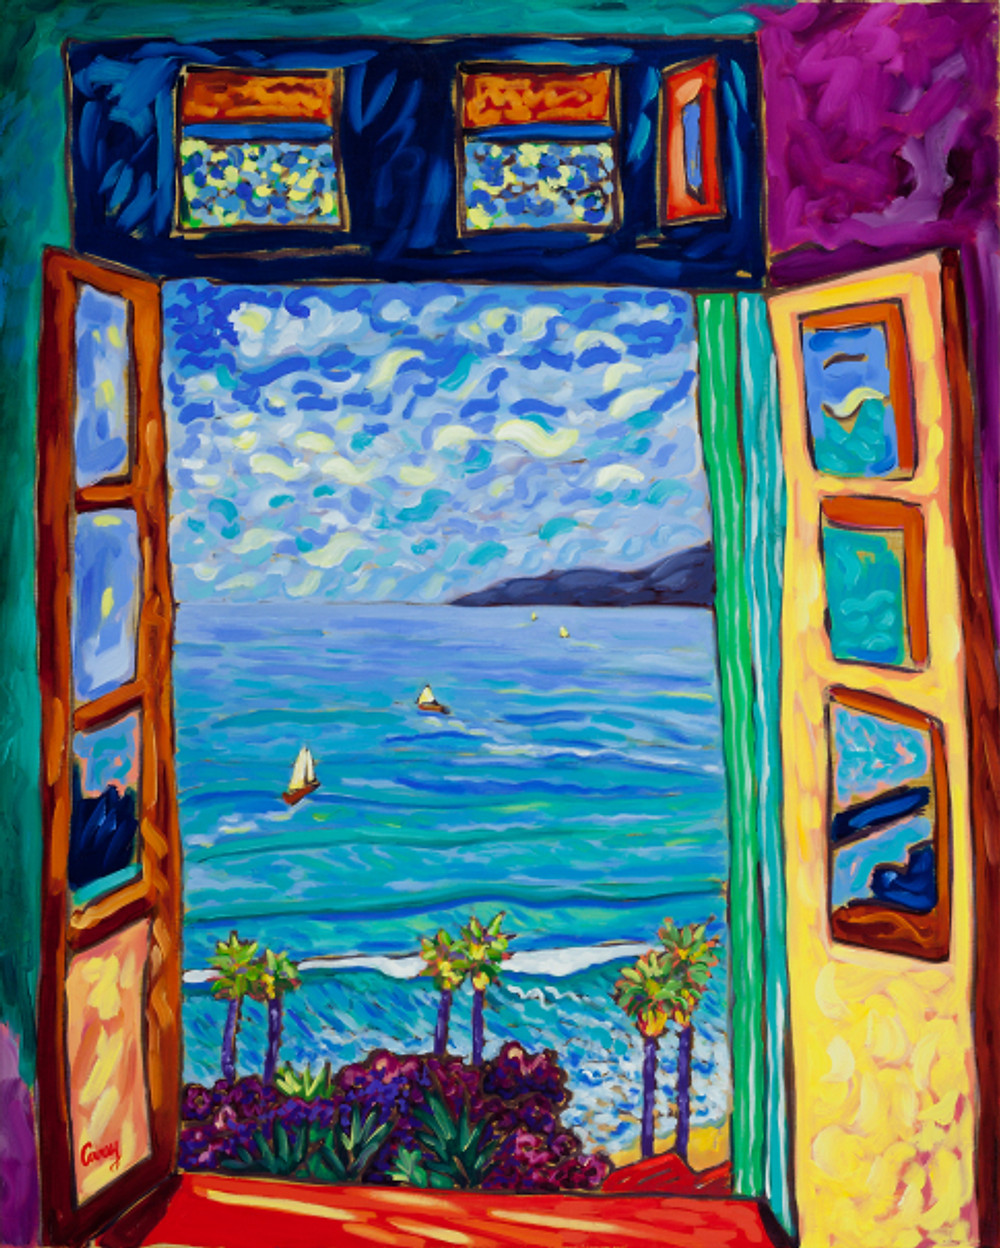 Serene Scene - Matisse windows series - by Cathy Carey ©2013